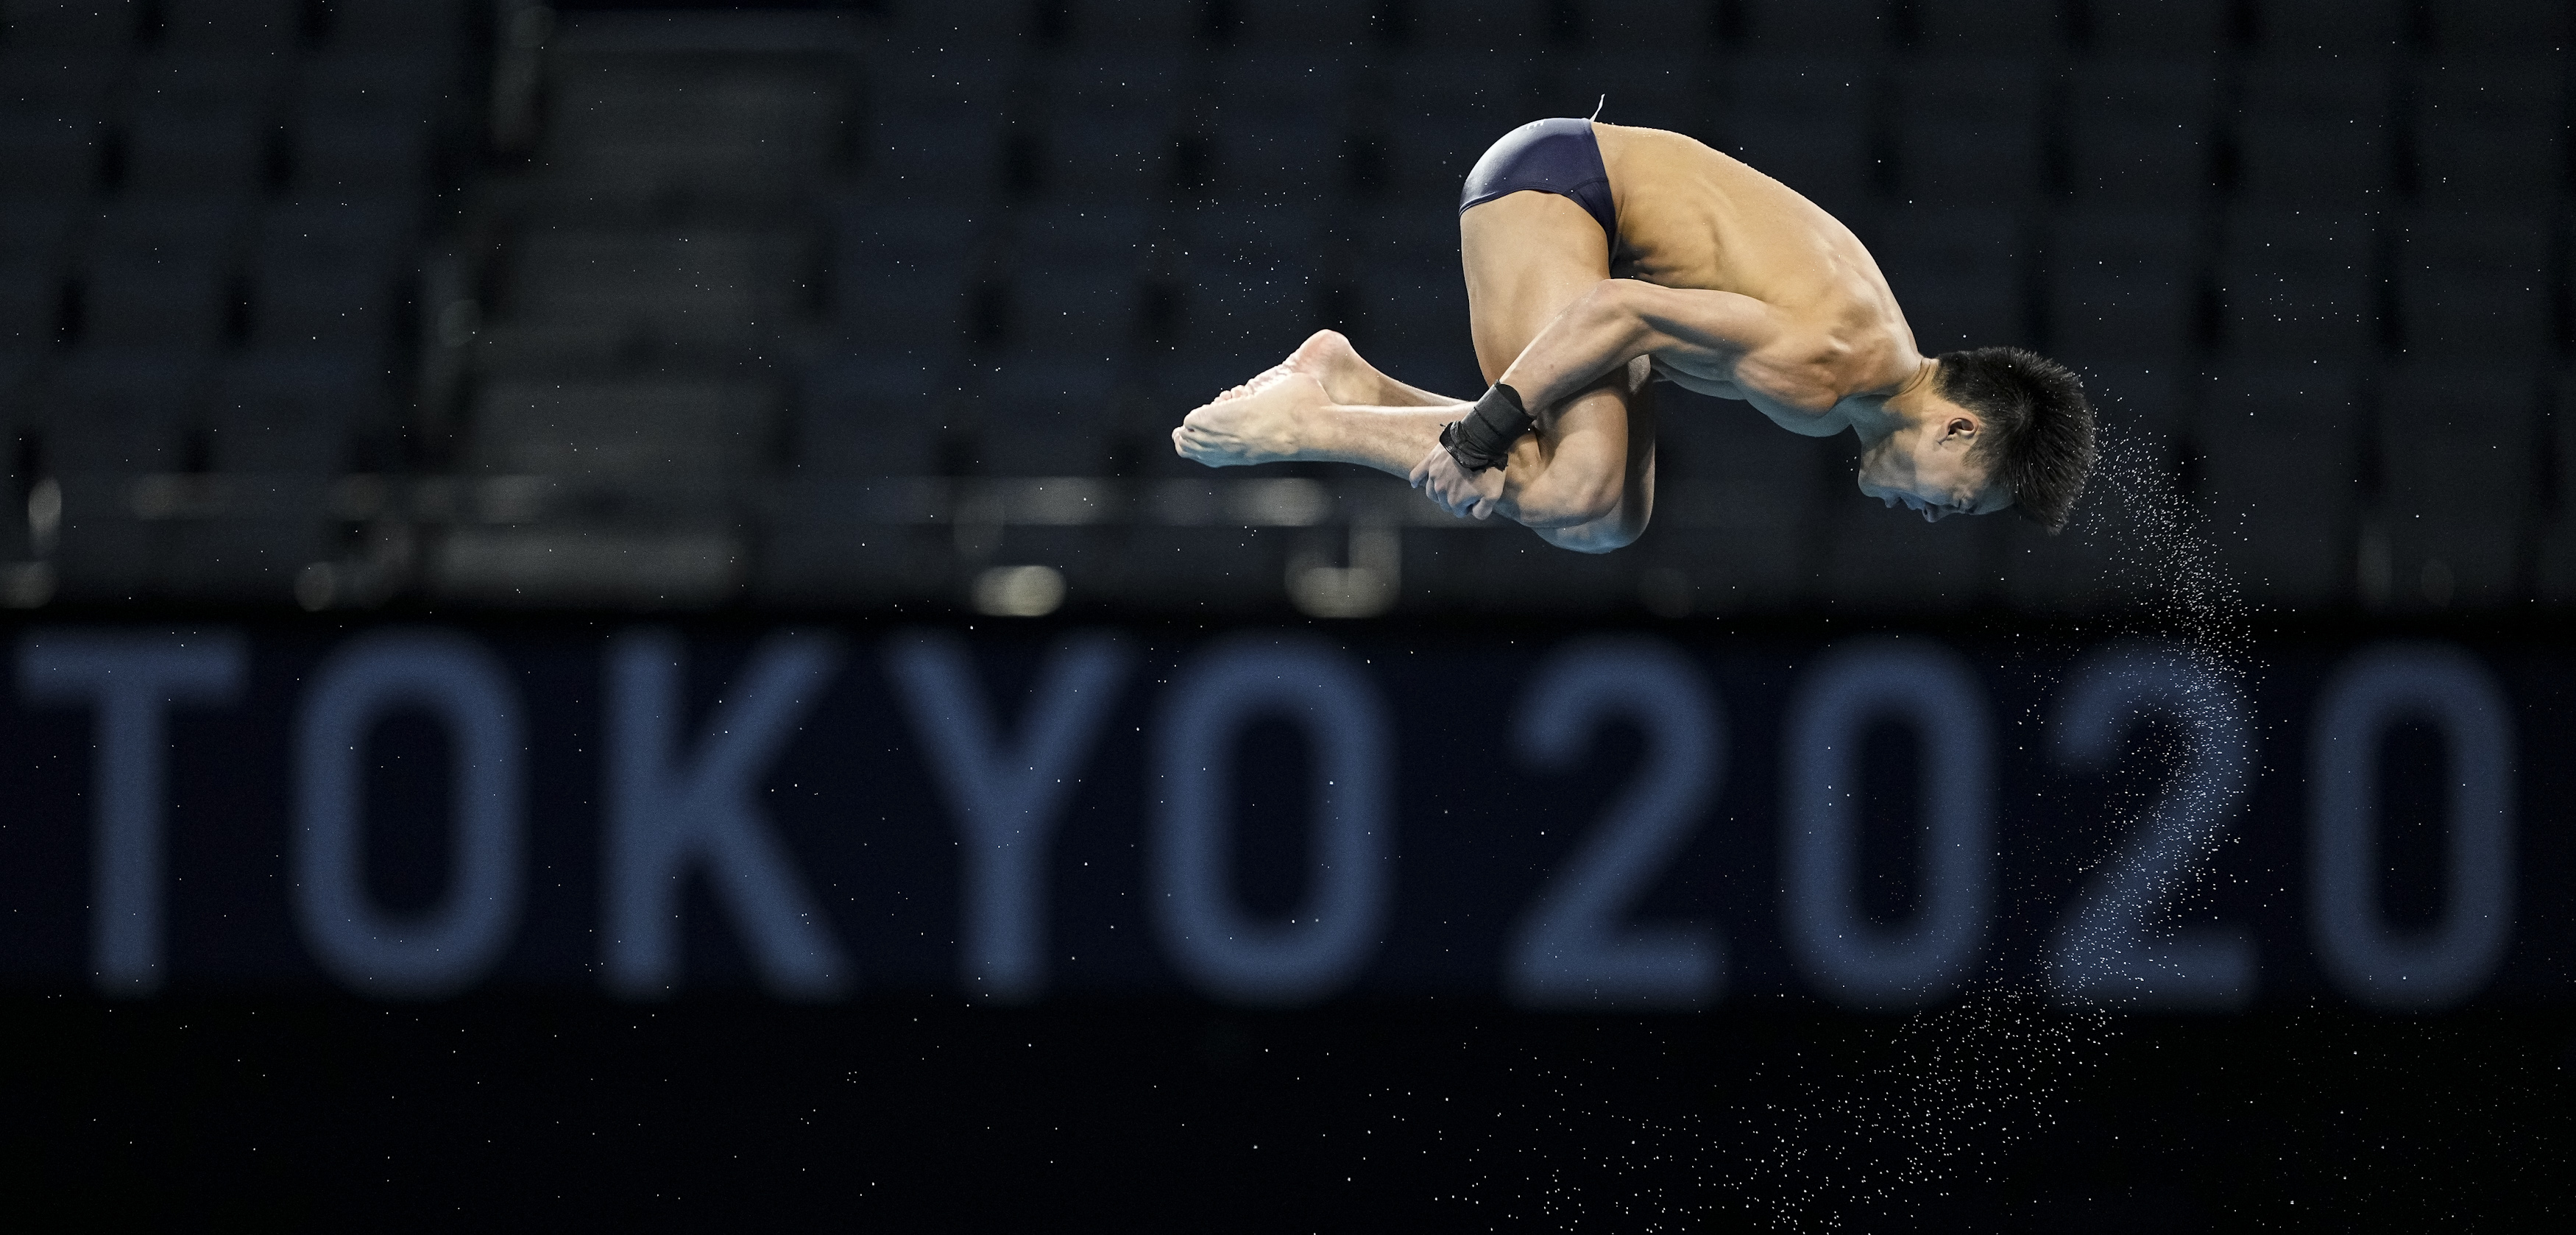 20210806_Diving_1CY3769